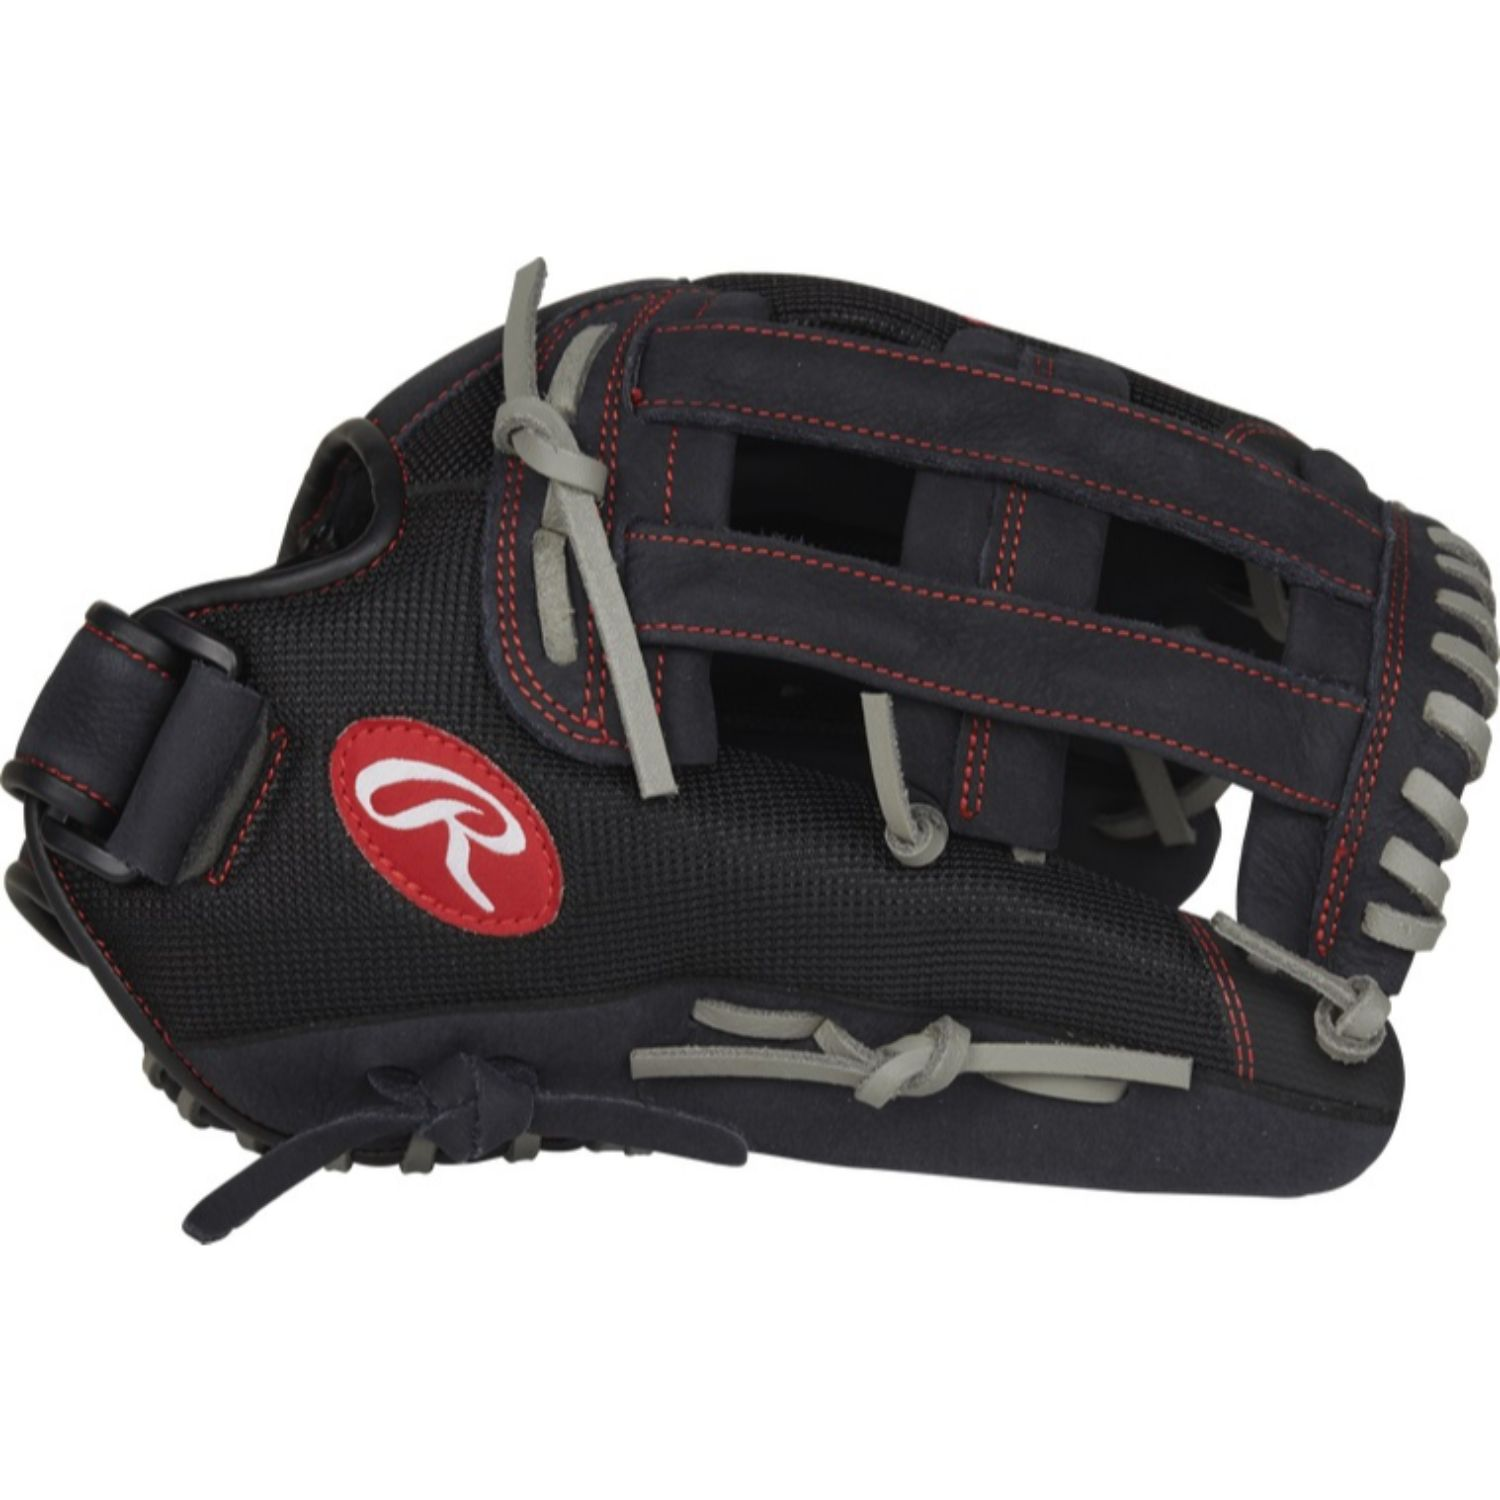 Rawlings Renegade Series 13 Inch Softball Outfield Glove LH